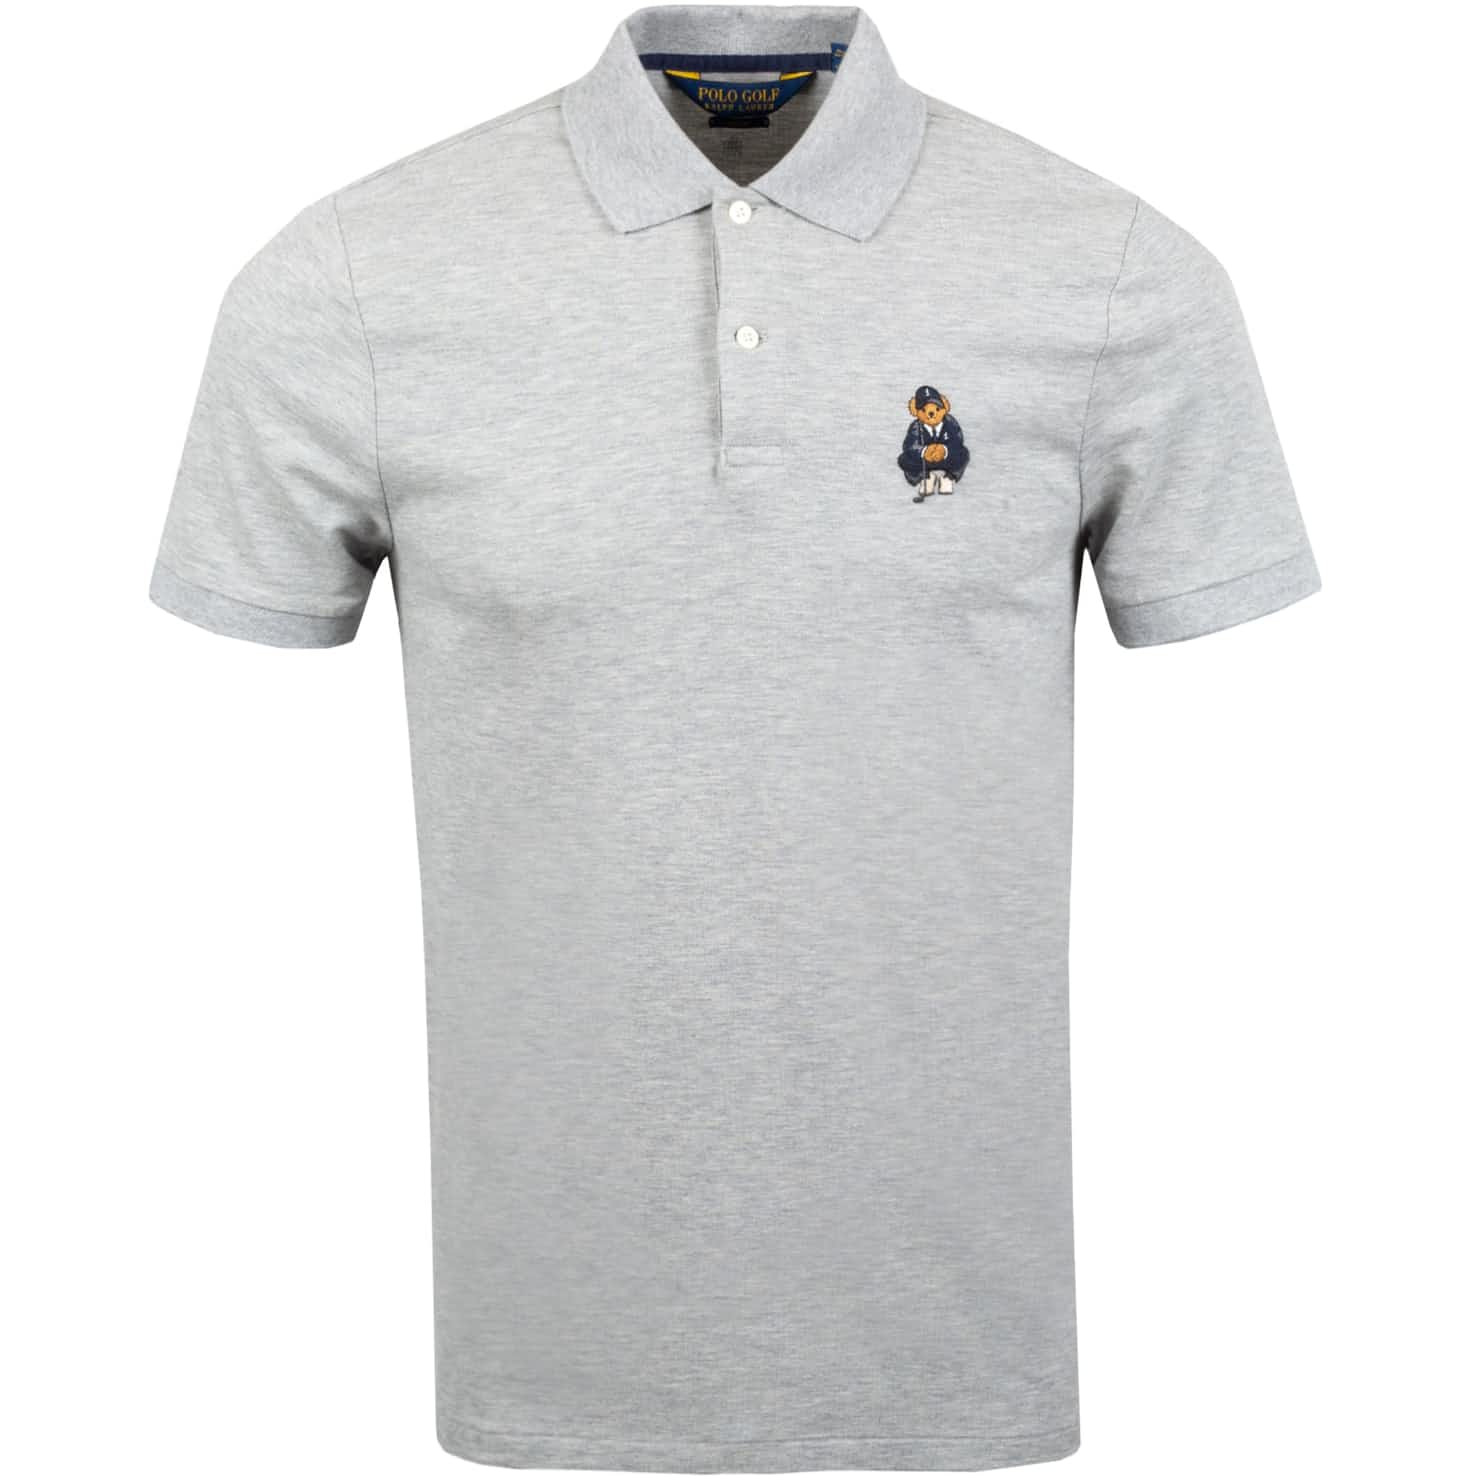 Bear Stretch Mesh Polo Light Grey Heather - SS20